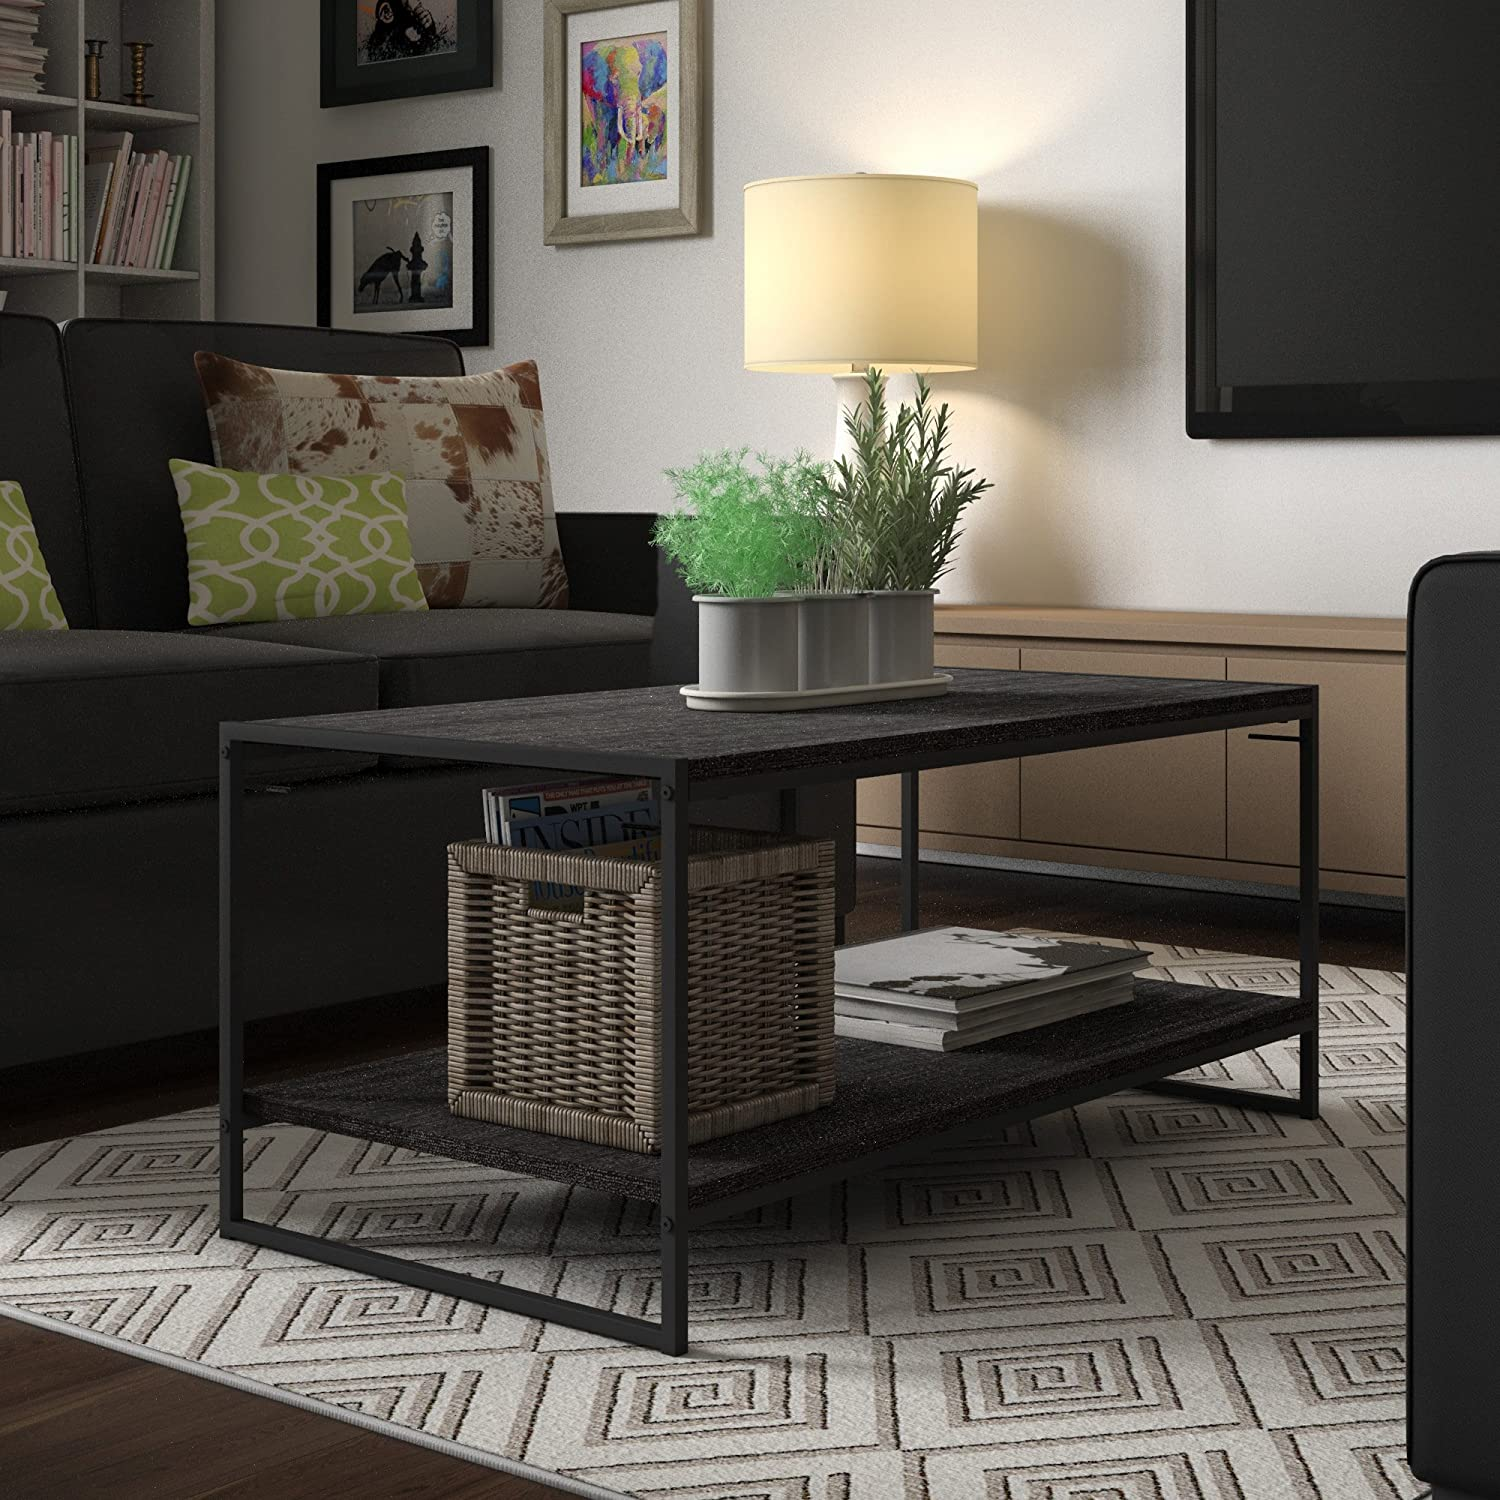 Divano Roma Furniture Modern Rectangular Coffee Table with 2 End Tables Living Room Set 3PC Set in Brown